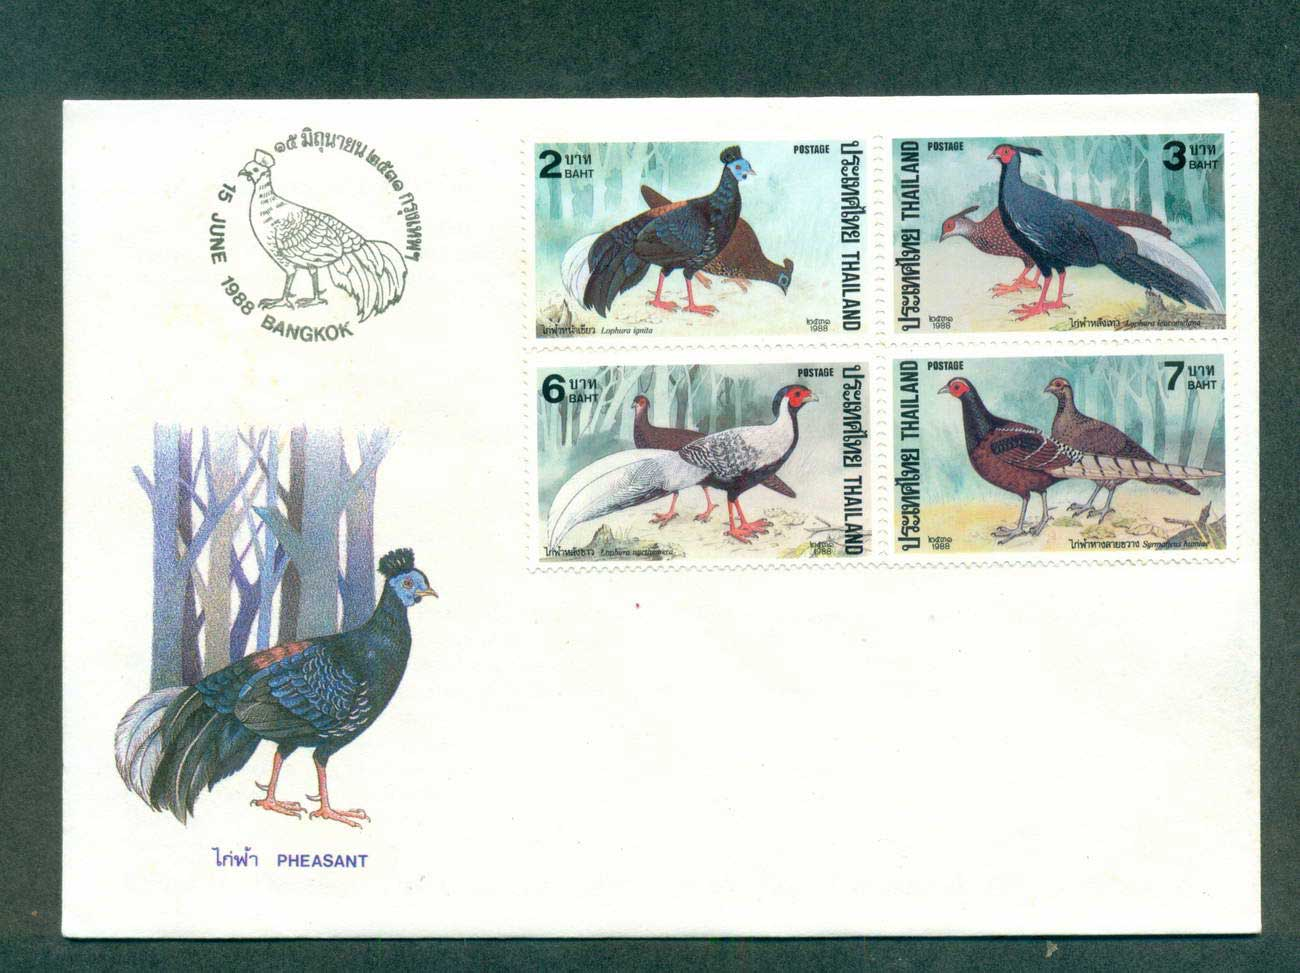 Thailand 1988 Pheasants FDC lot62108